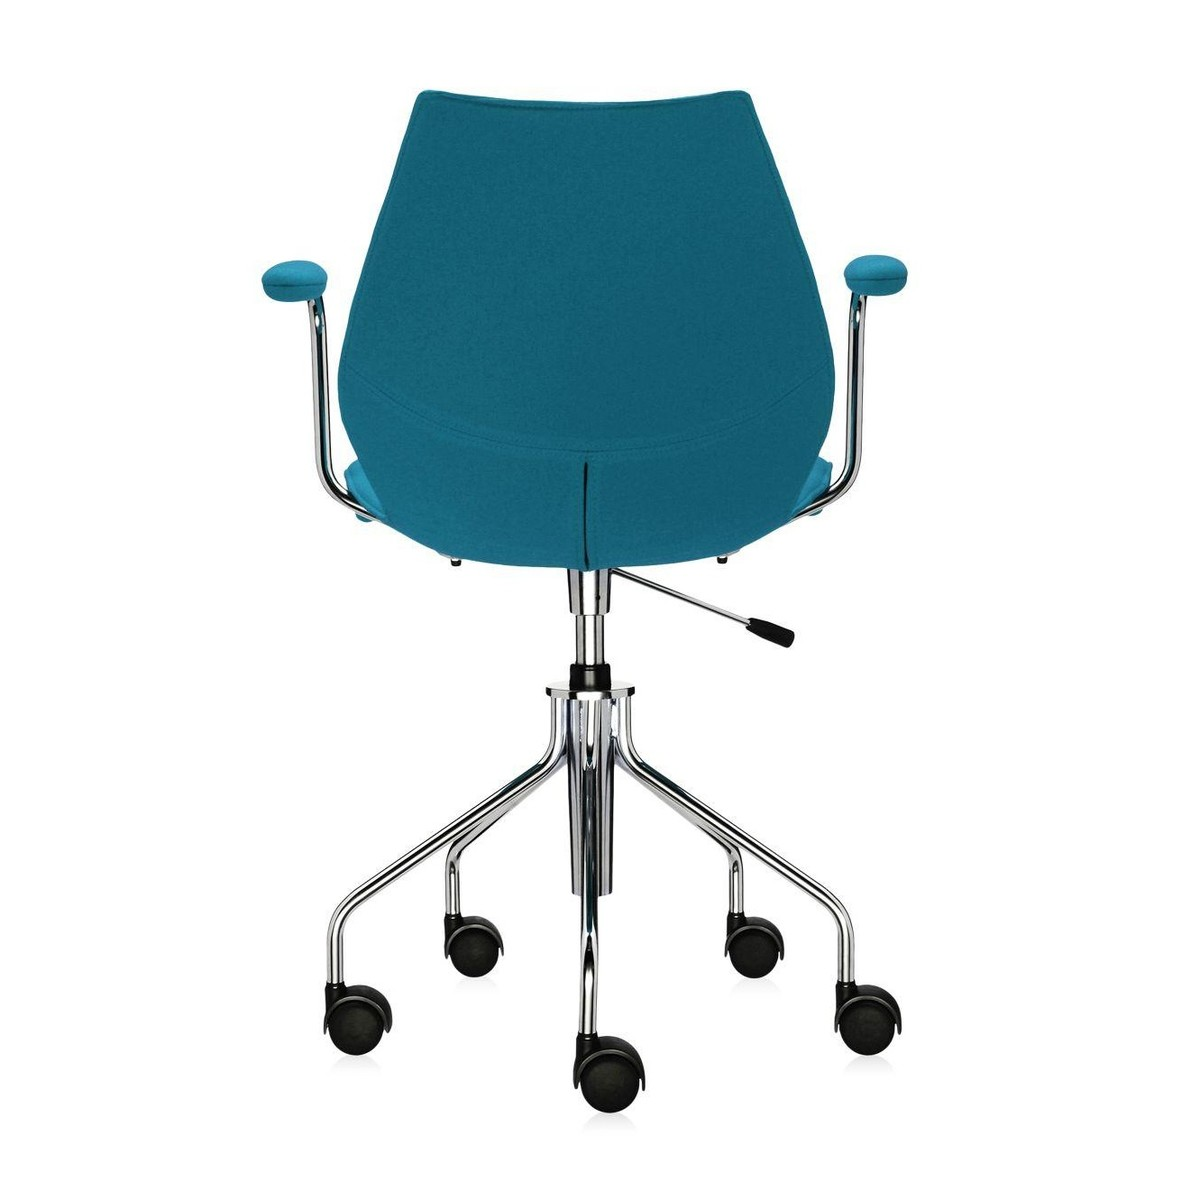 Maui soft office chair with armrests kartell for Chaise candie life